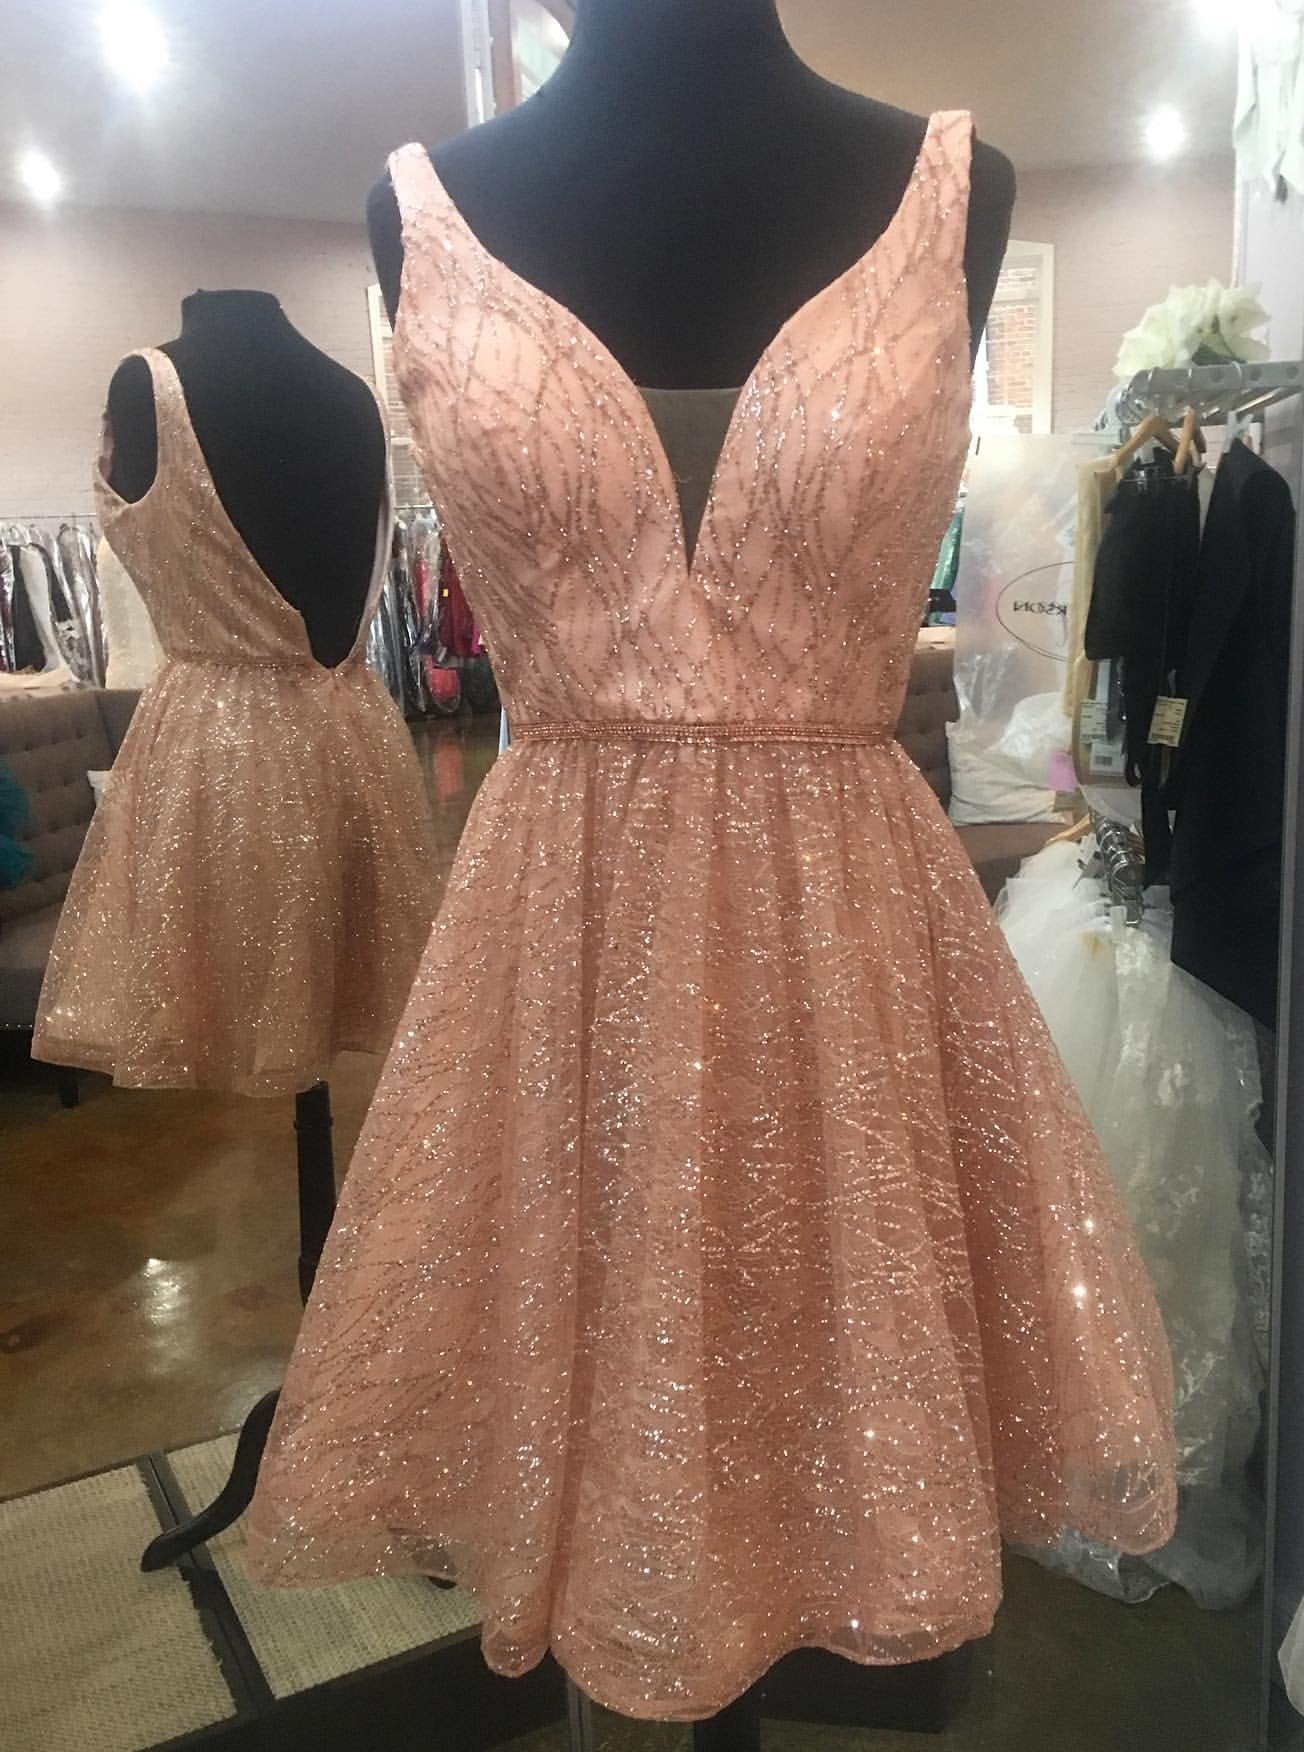 A-Line V-neck Backless Homecoming Dresses, Sequins Short Prom Dress GM75